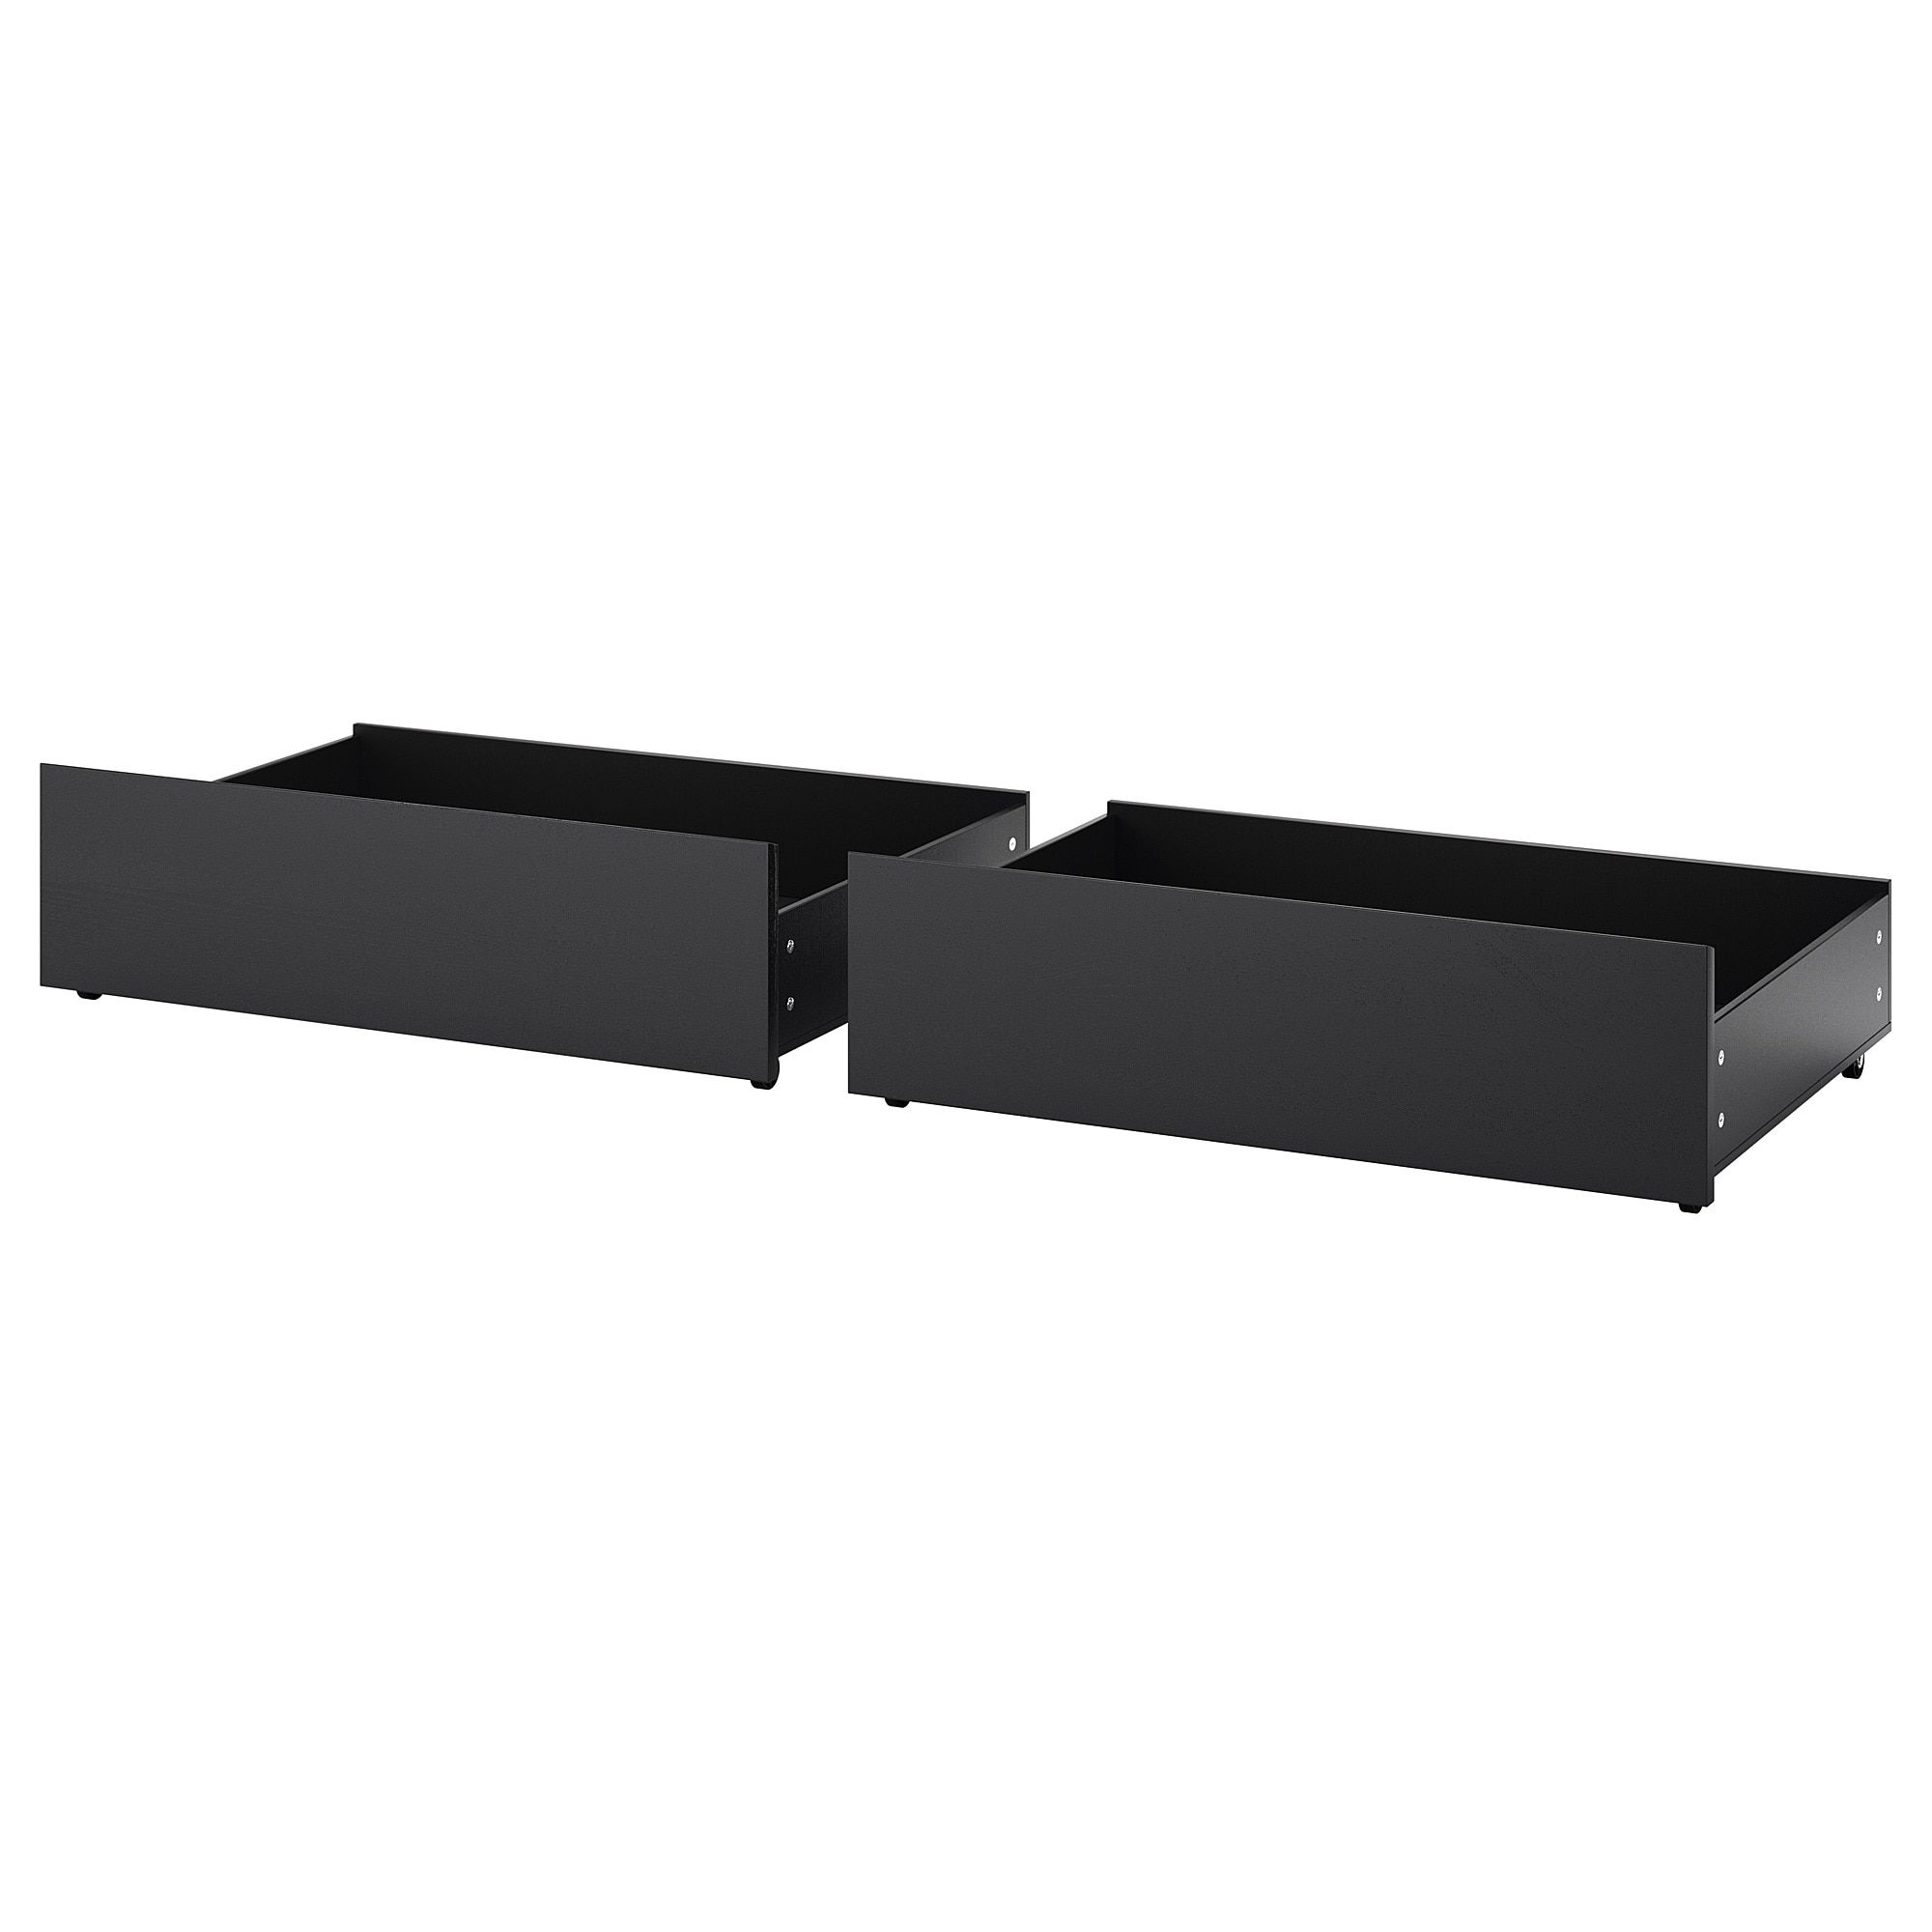 Malm Underbed Storage Box For High Bed Black Brown Queen King Under Bed Storage Malm Bed Malm